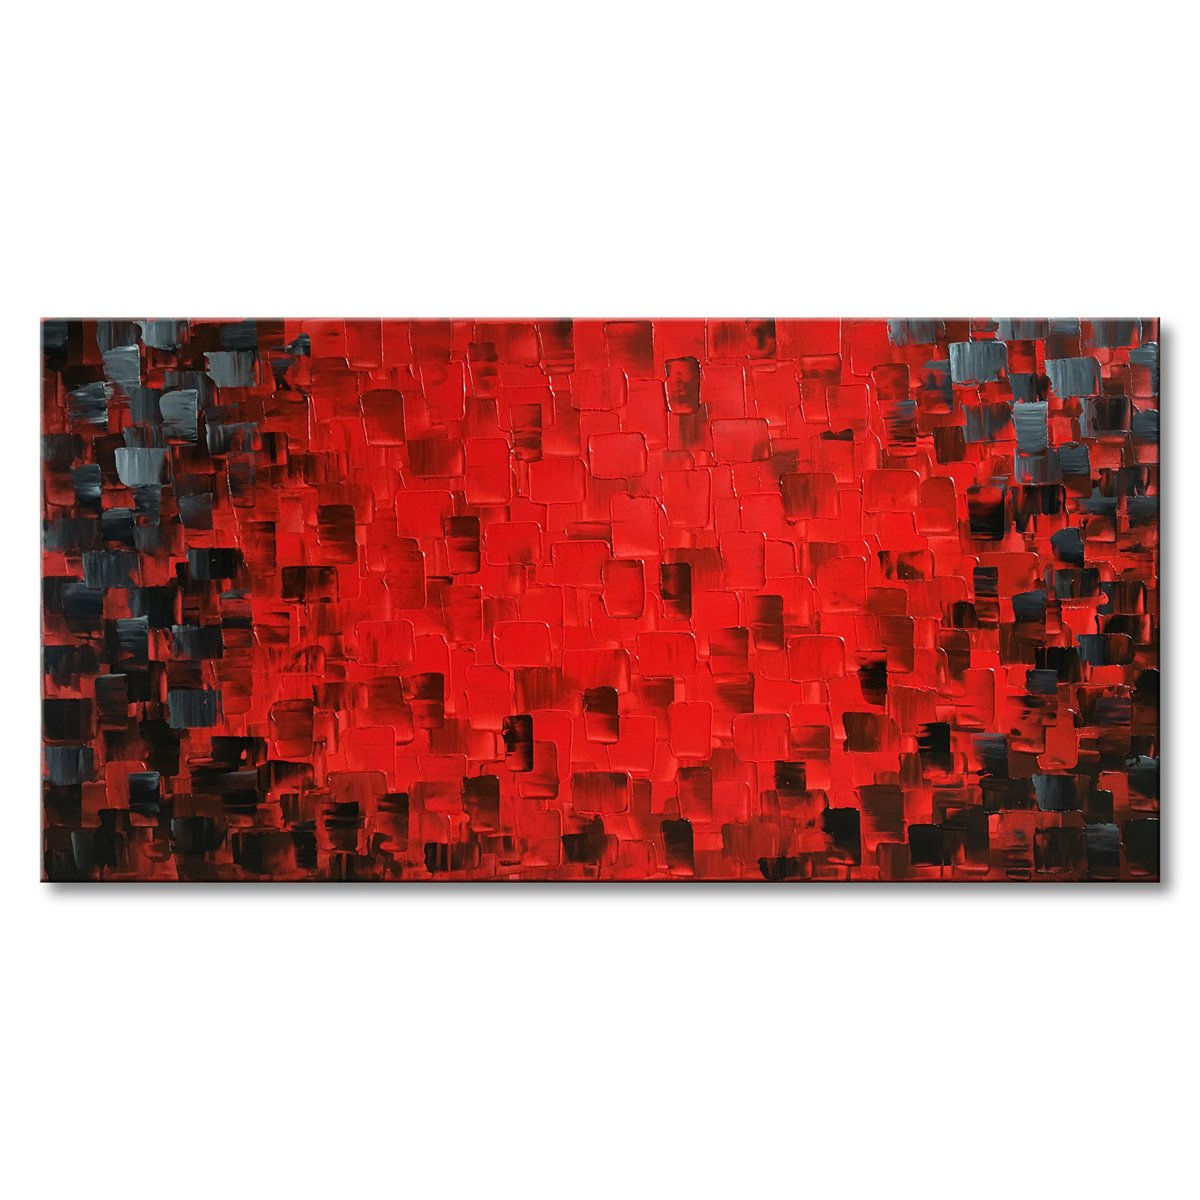 Seekland Art Red Abstract Canvas Art Modern Handmade Textured Oil Painting Wall Decoration Picture Unframe 72''W x 36''H by Seekland Art